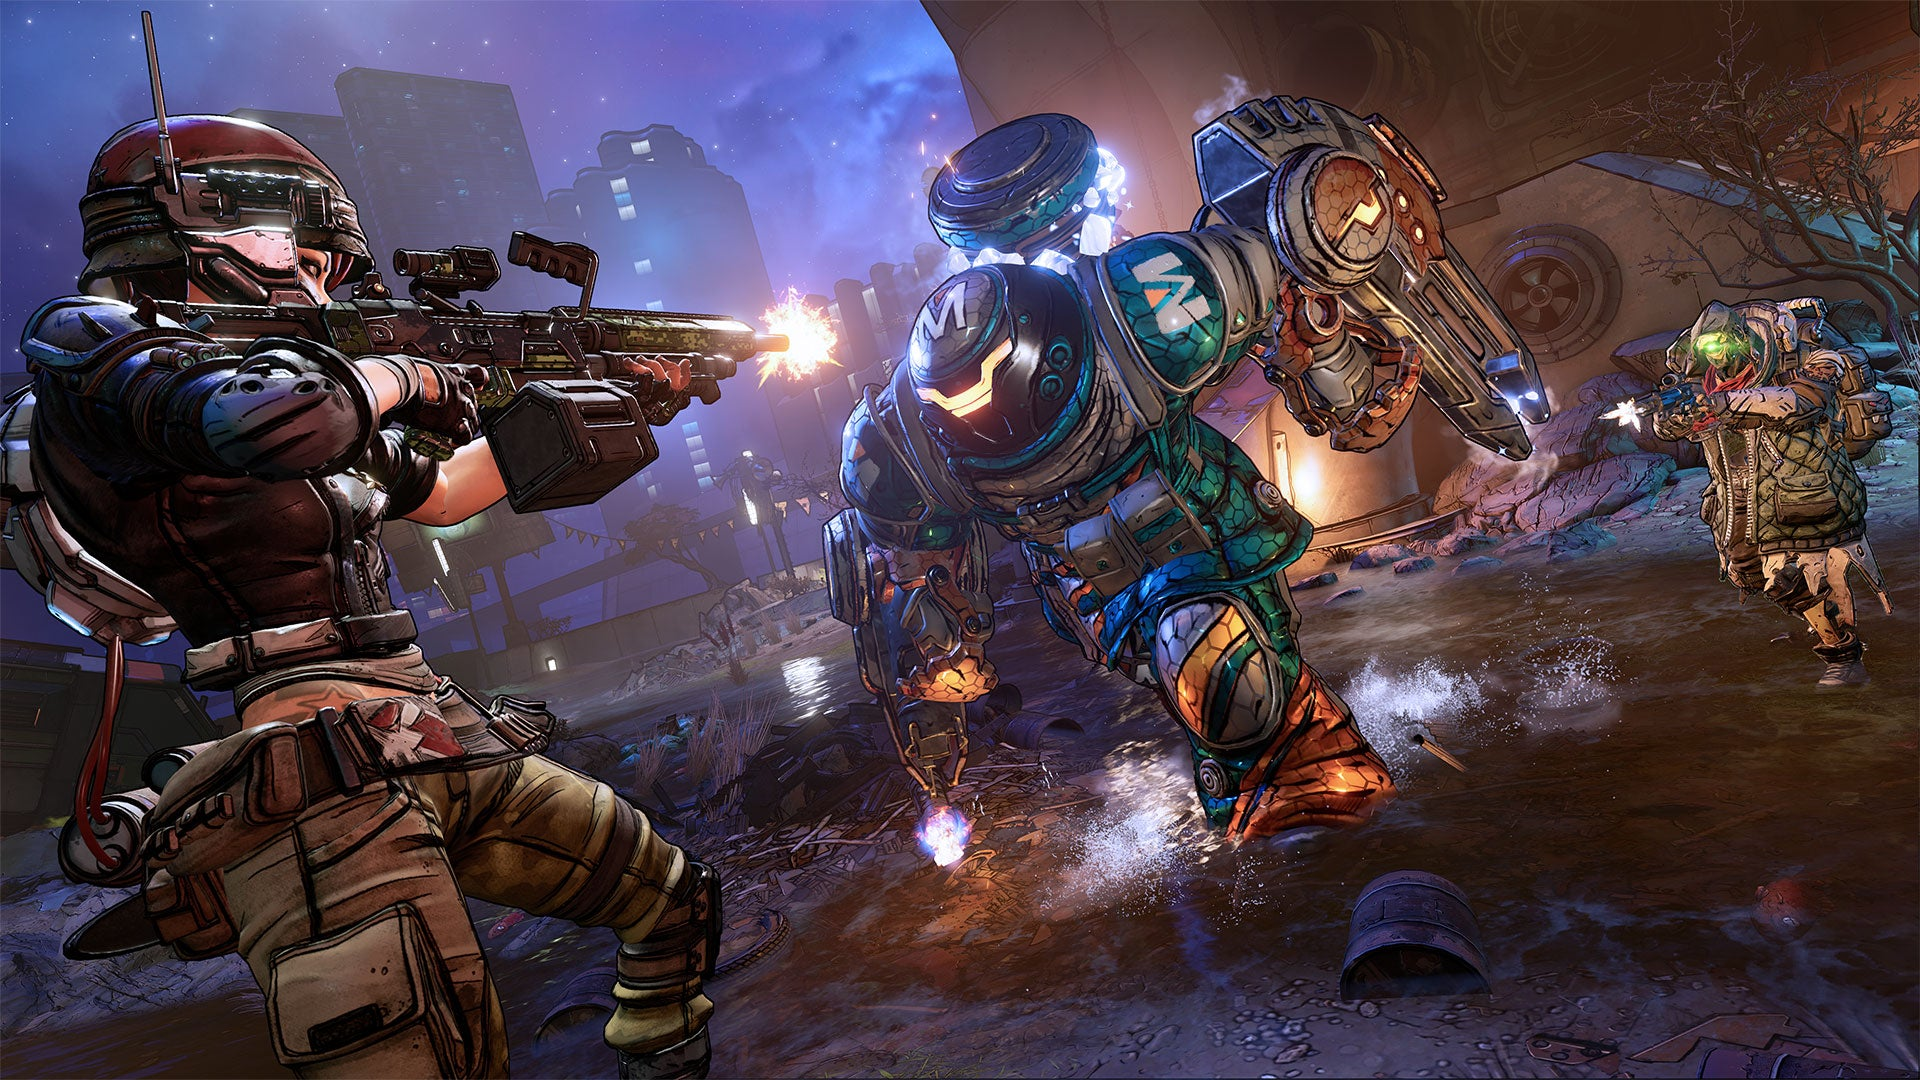 Borderlands 3 preview: The new gold standard for co-op gameplay